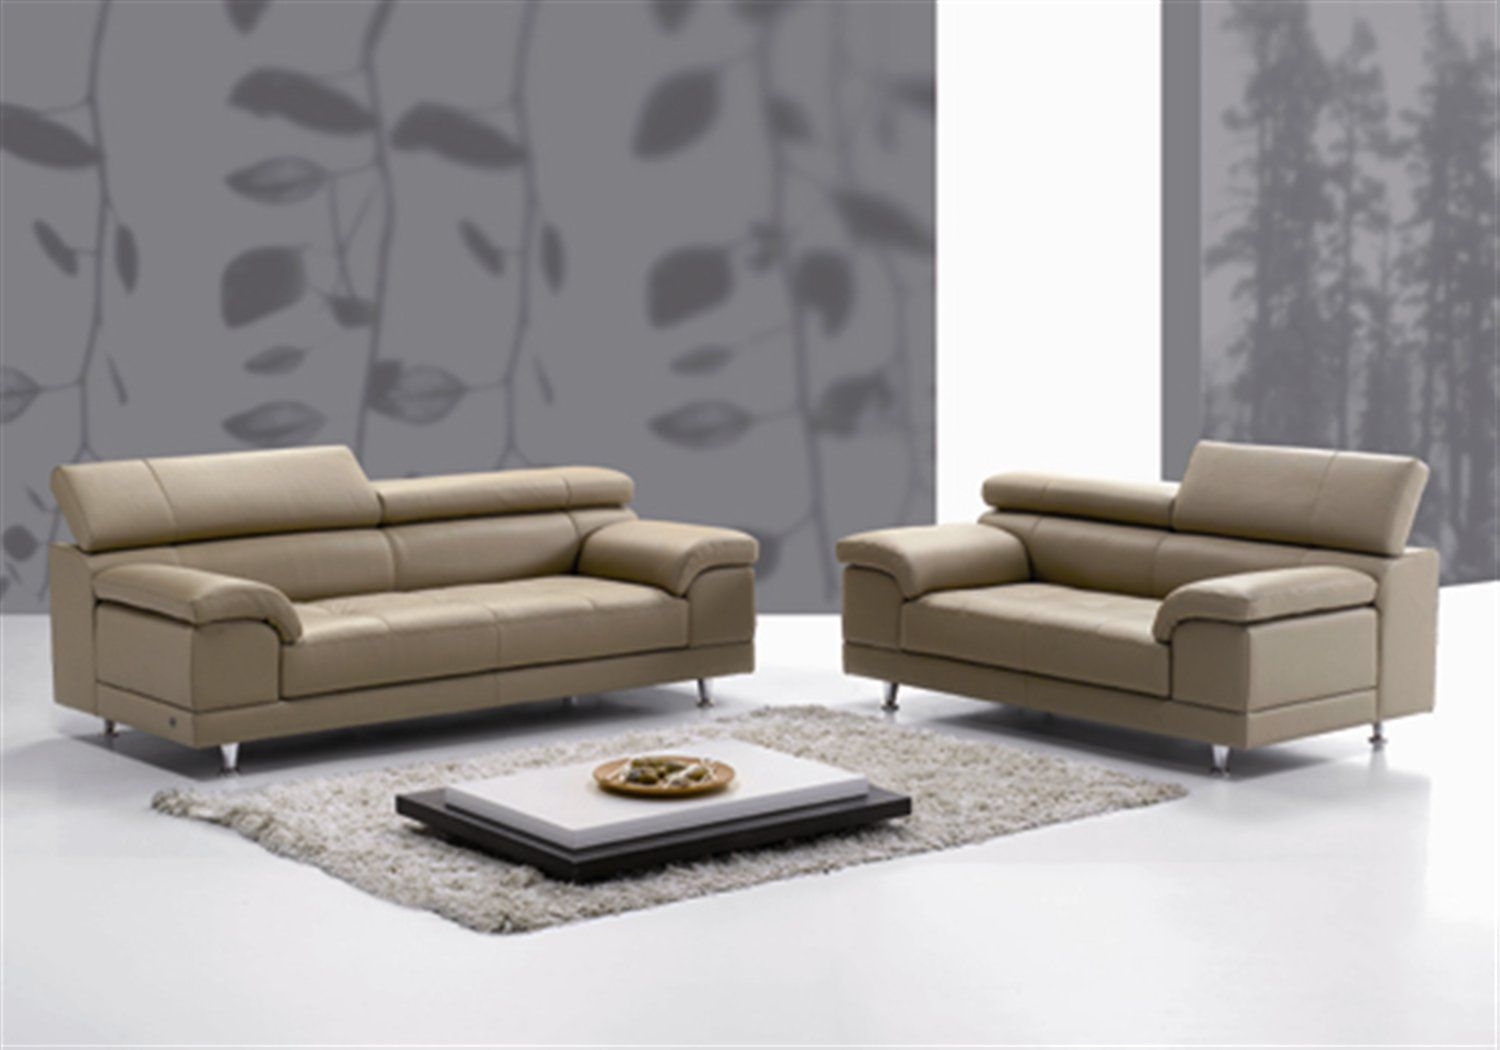 Stunning Piquattro Leather Italian Sofas Idea Ground